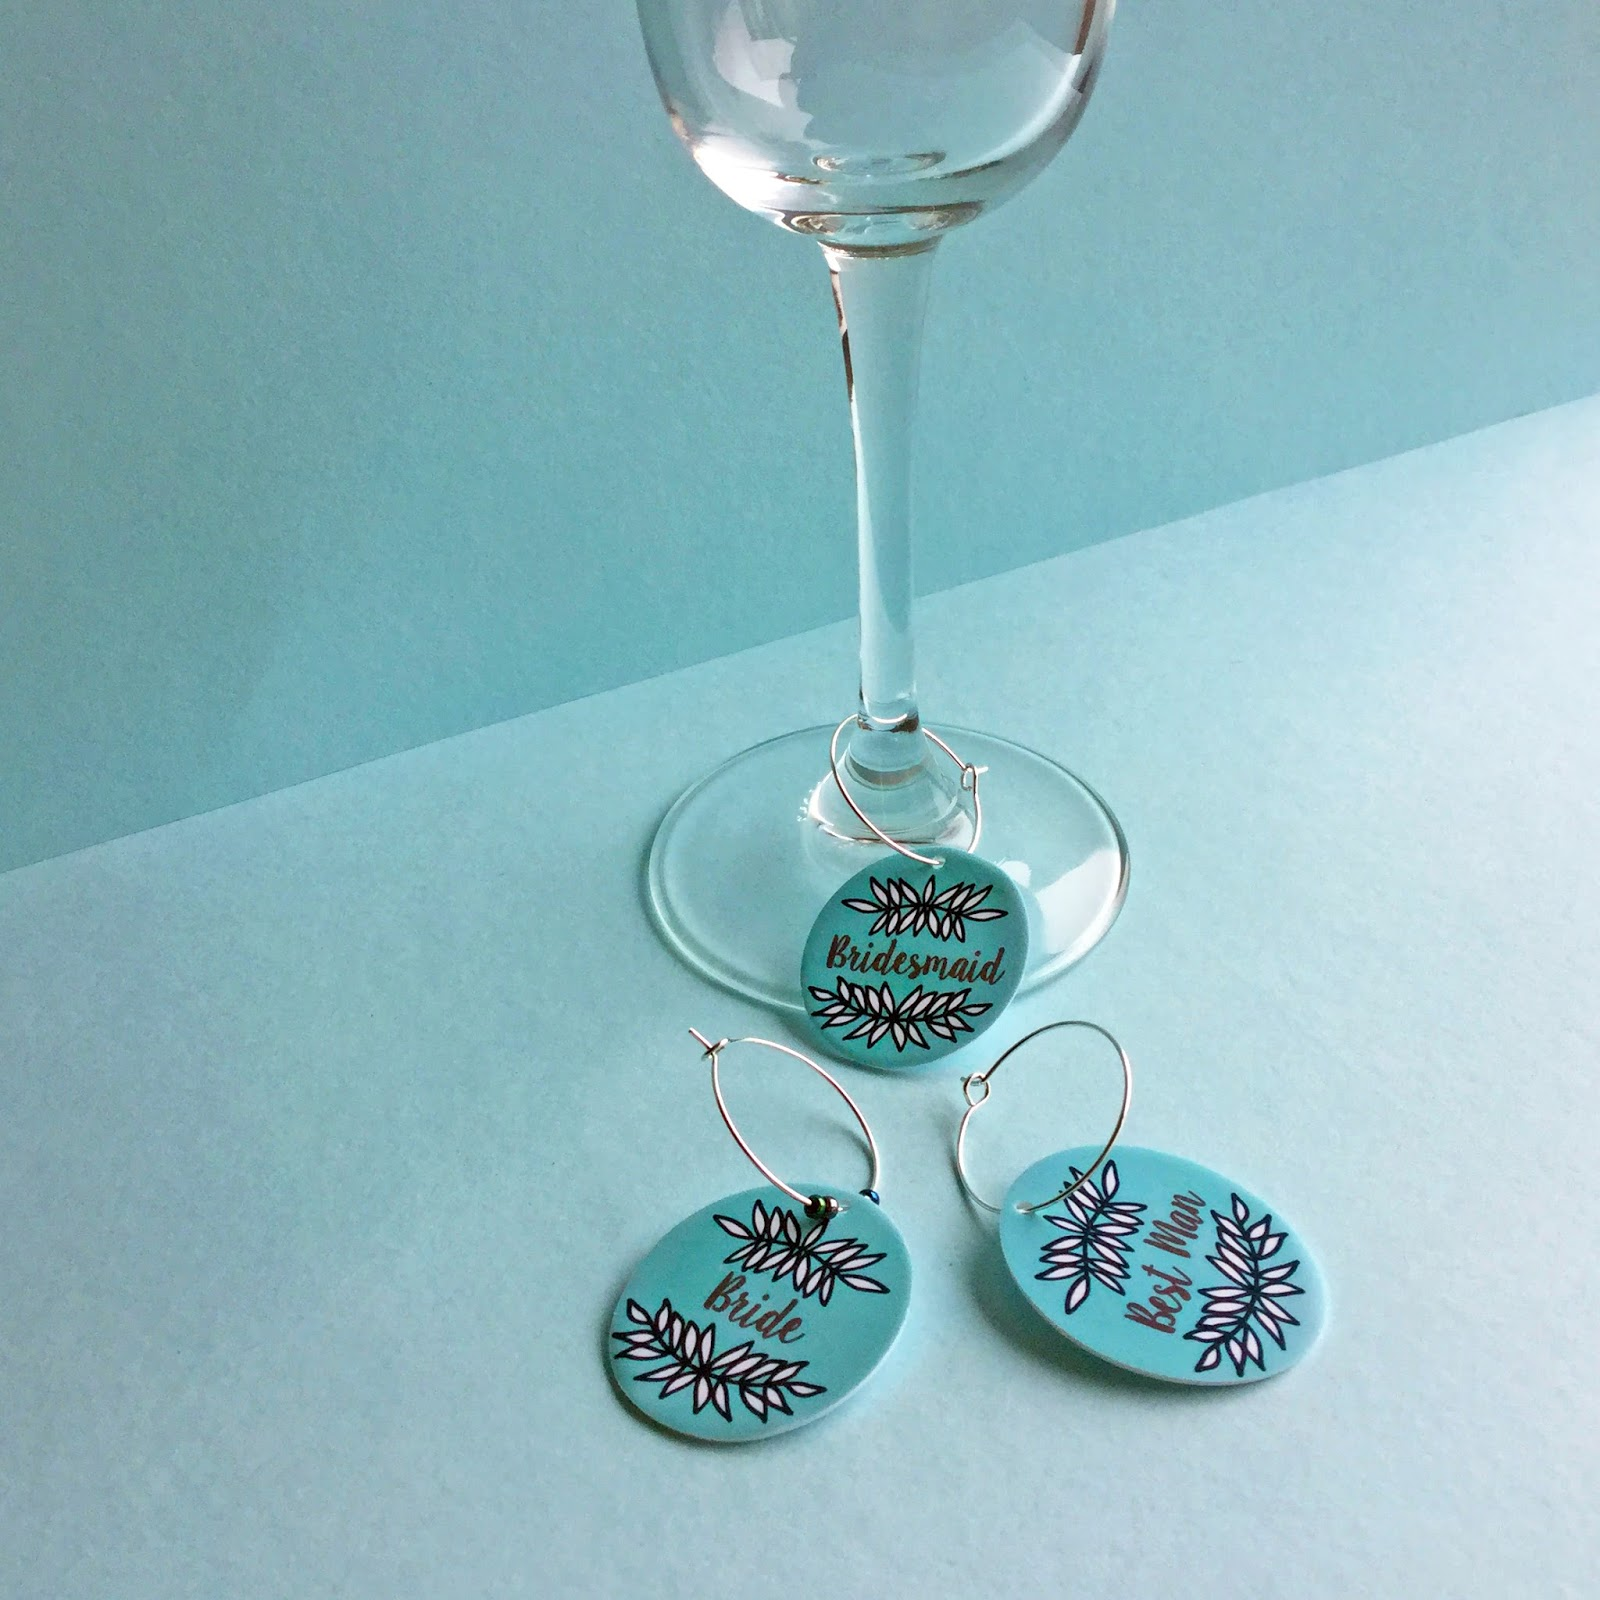 Crafting Quine: Make Wine Glass Charms with Silhouette Shrink Plastic